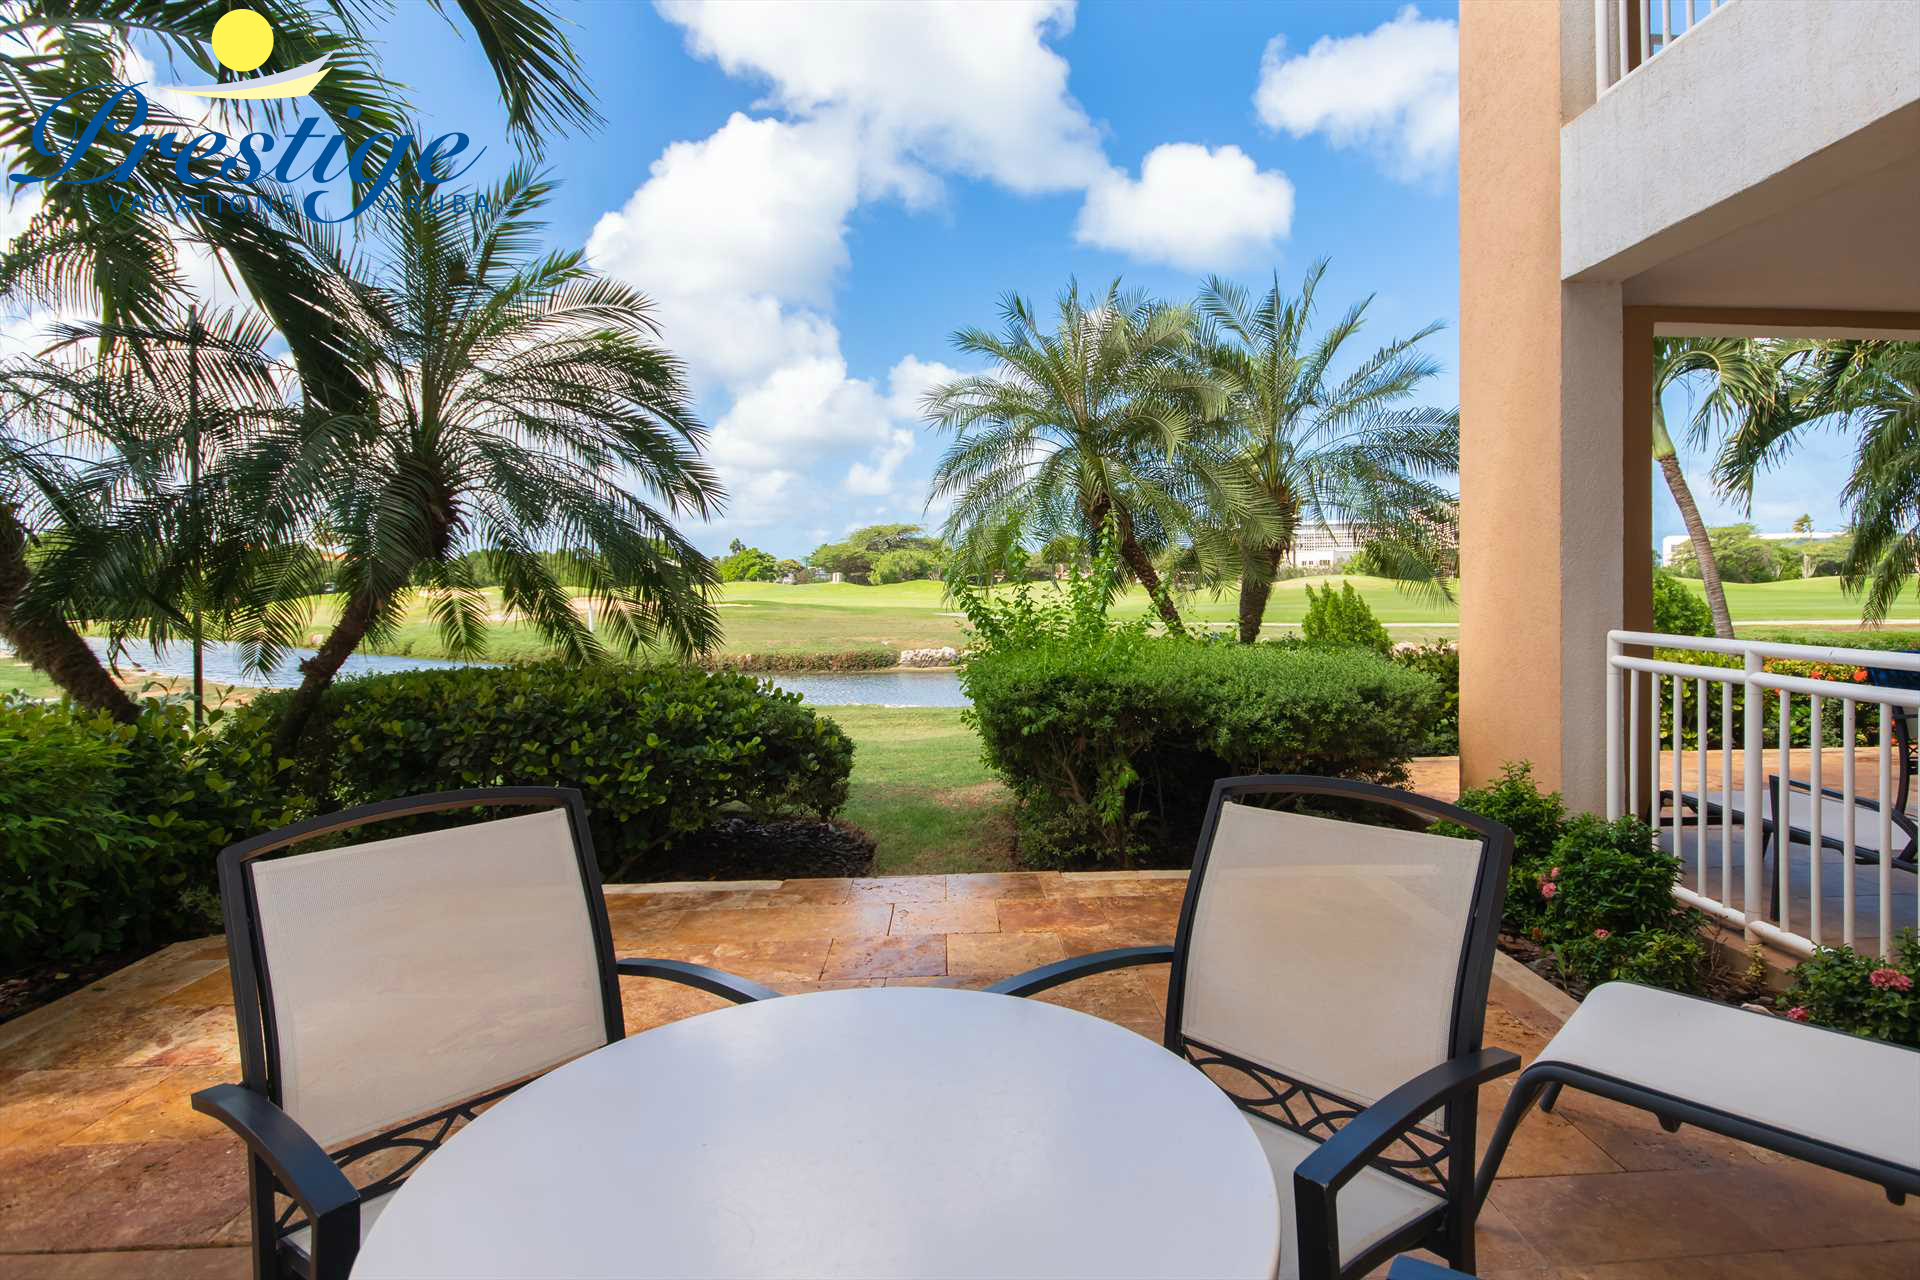 Welcome to your Divi Golf Garden Studio condo